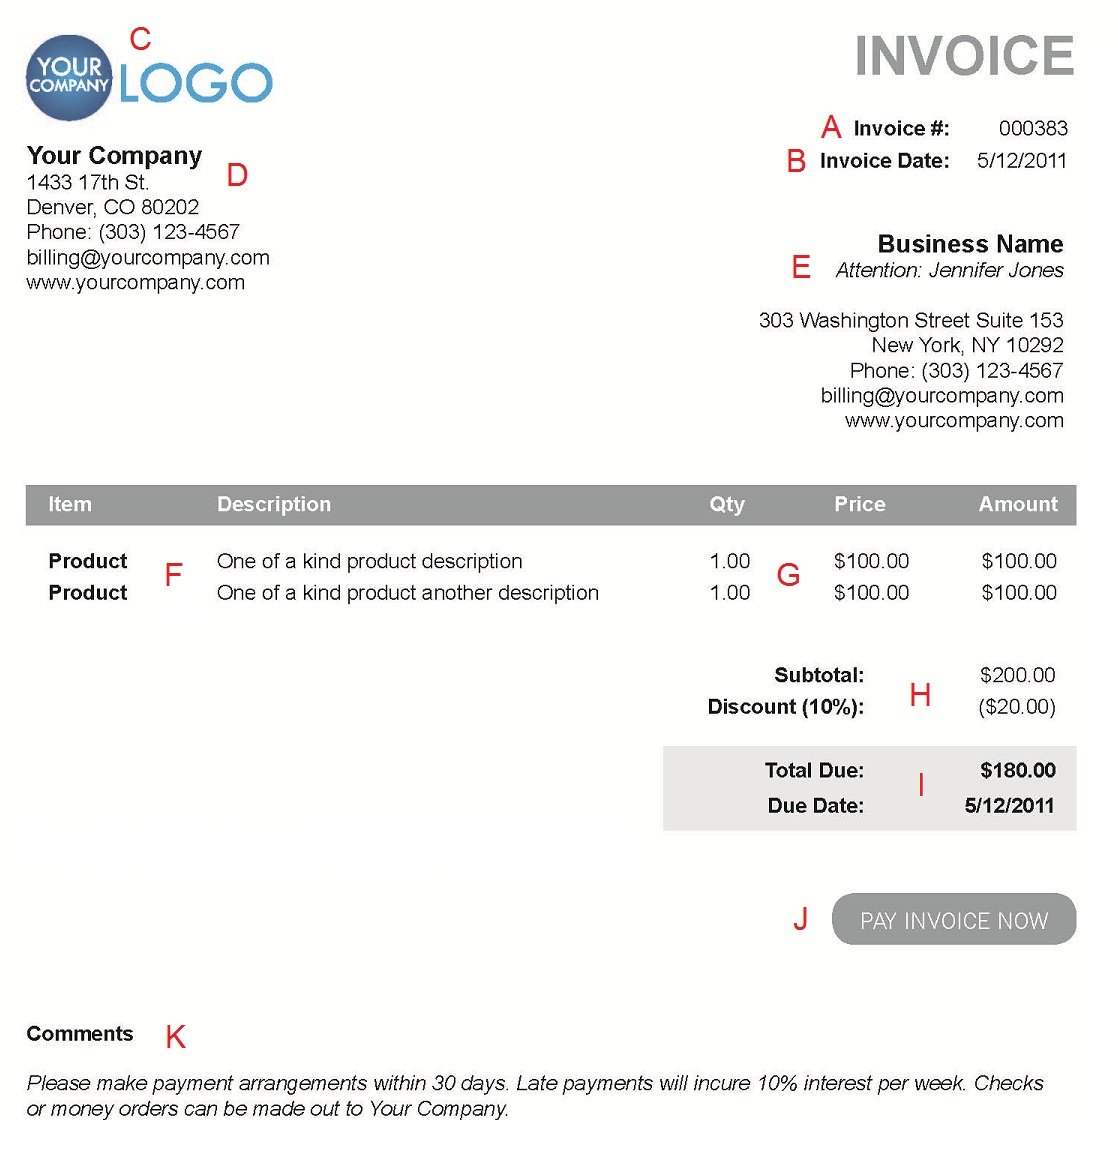 Sexygirlswallpapersus  Pleasing The  Different Sections Of An Electronic Payment Invoice With Fetching A  With Breathtaking Zero Invoice Also Types Of Invoices In Accounts Payable In Addition Invoice Sample Doc And Free Invoice Template Microsoft As Well As When Is A Tax Invoice Required Additionally Quickbooks Invoice Payment From Paysimplecom With Sexygirlswallpapersus  Fetching The  Different Sections Of An Electronic Payment Invoice With Breathtaking A  And Pleasing Zero Invoice Also Types Of Invoices In Accounts Payable In Addition Invoice Sample Doc From Paysimplecom